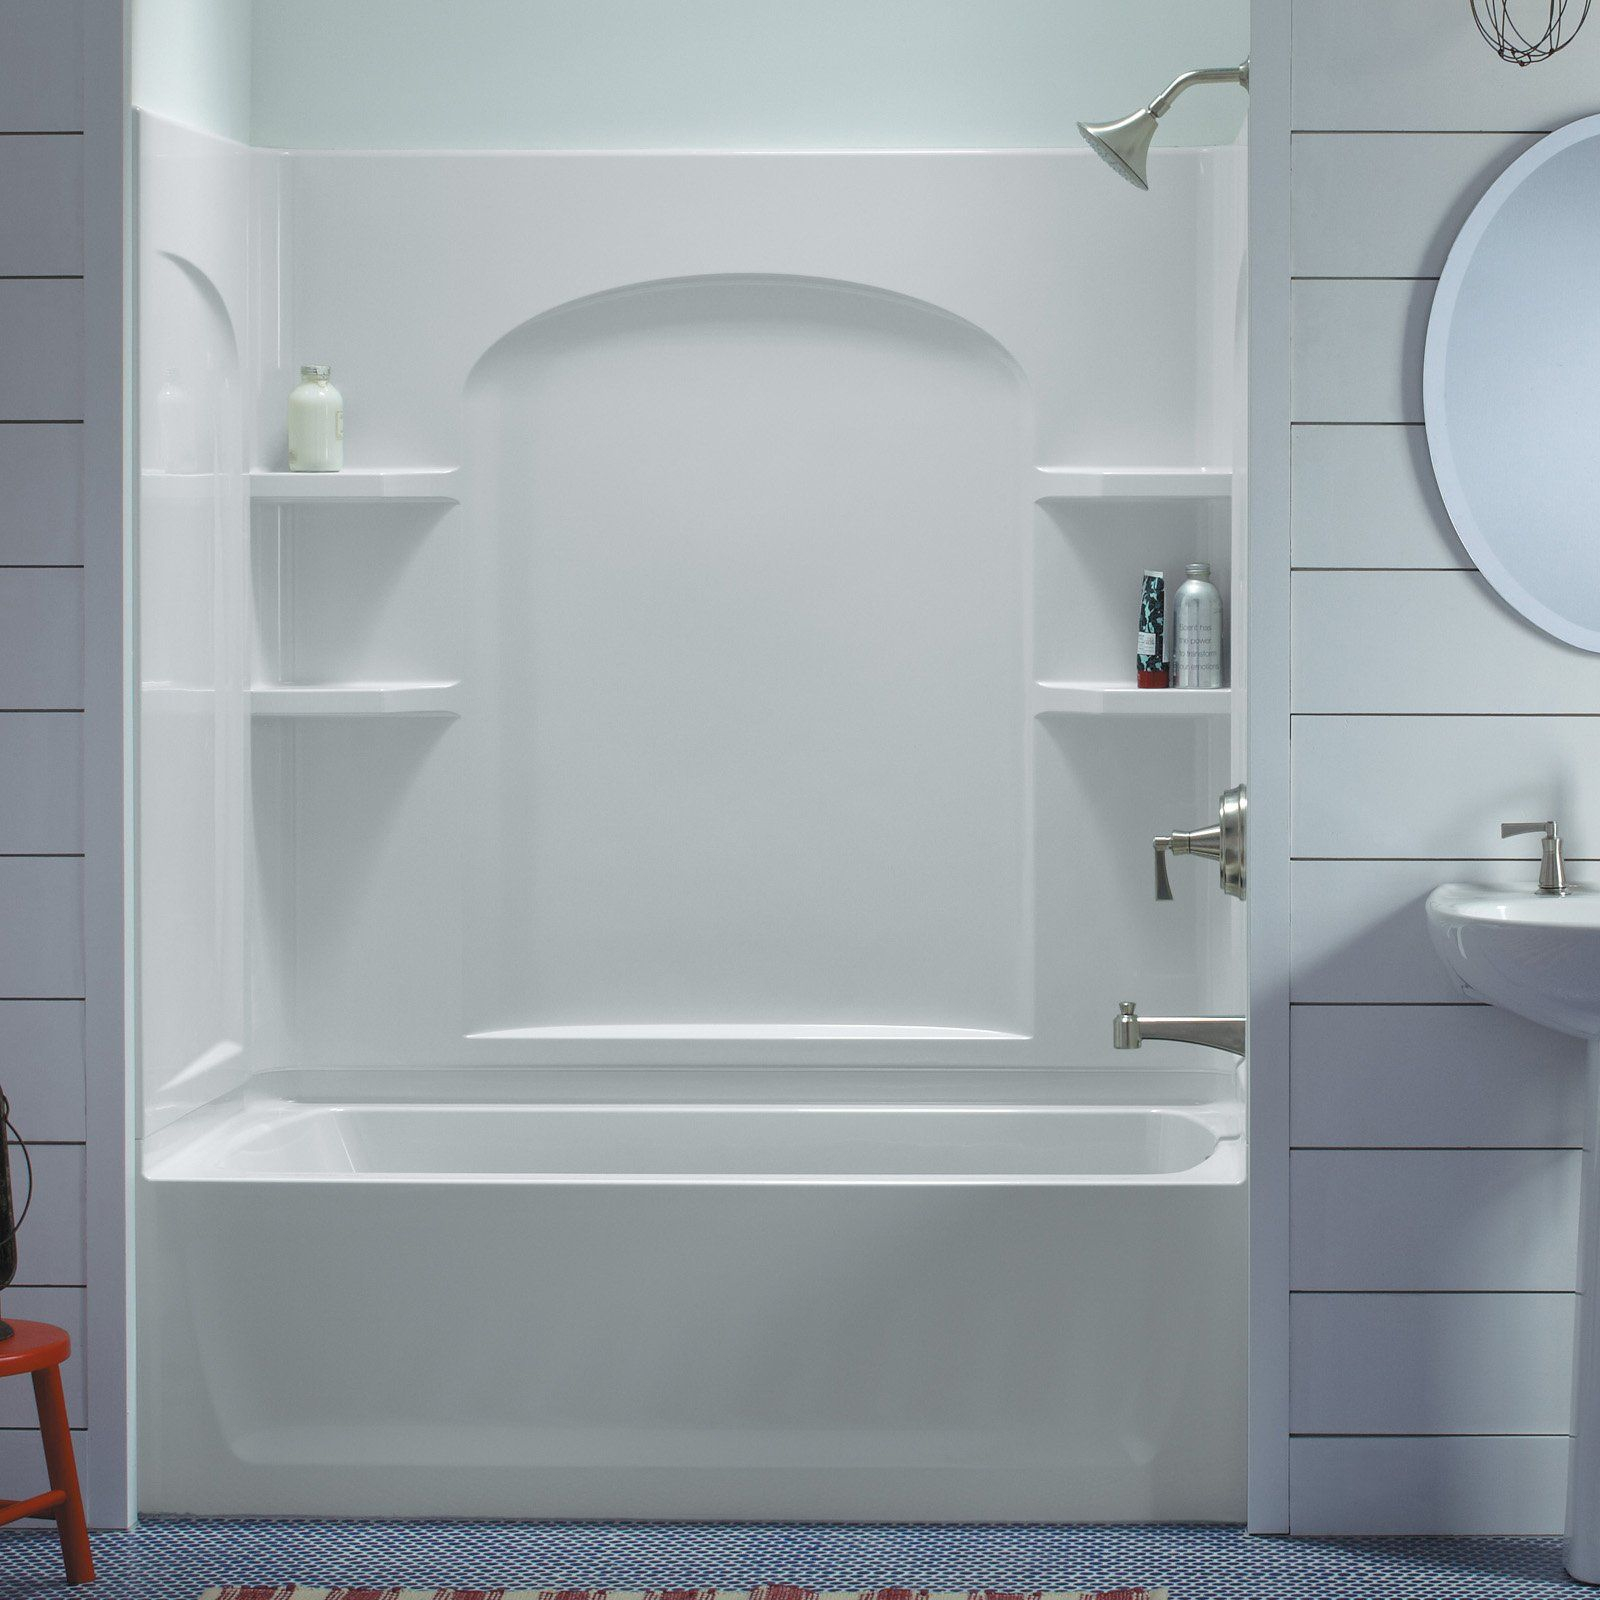 Sterling Ensemble White Vikrell Bathtub Wall Surround • Bathtub Ideas